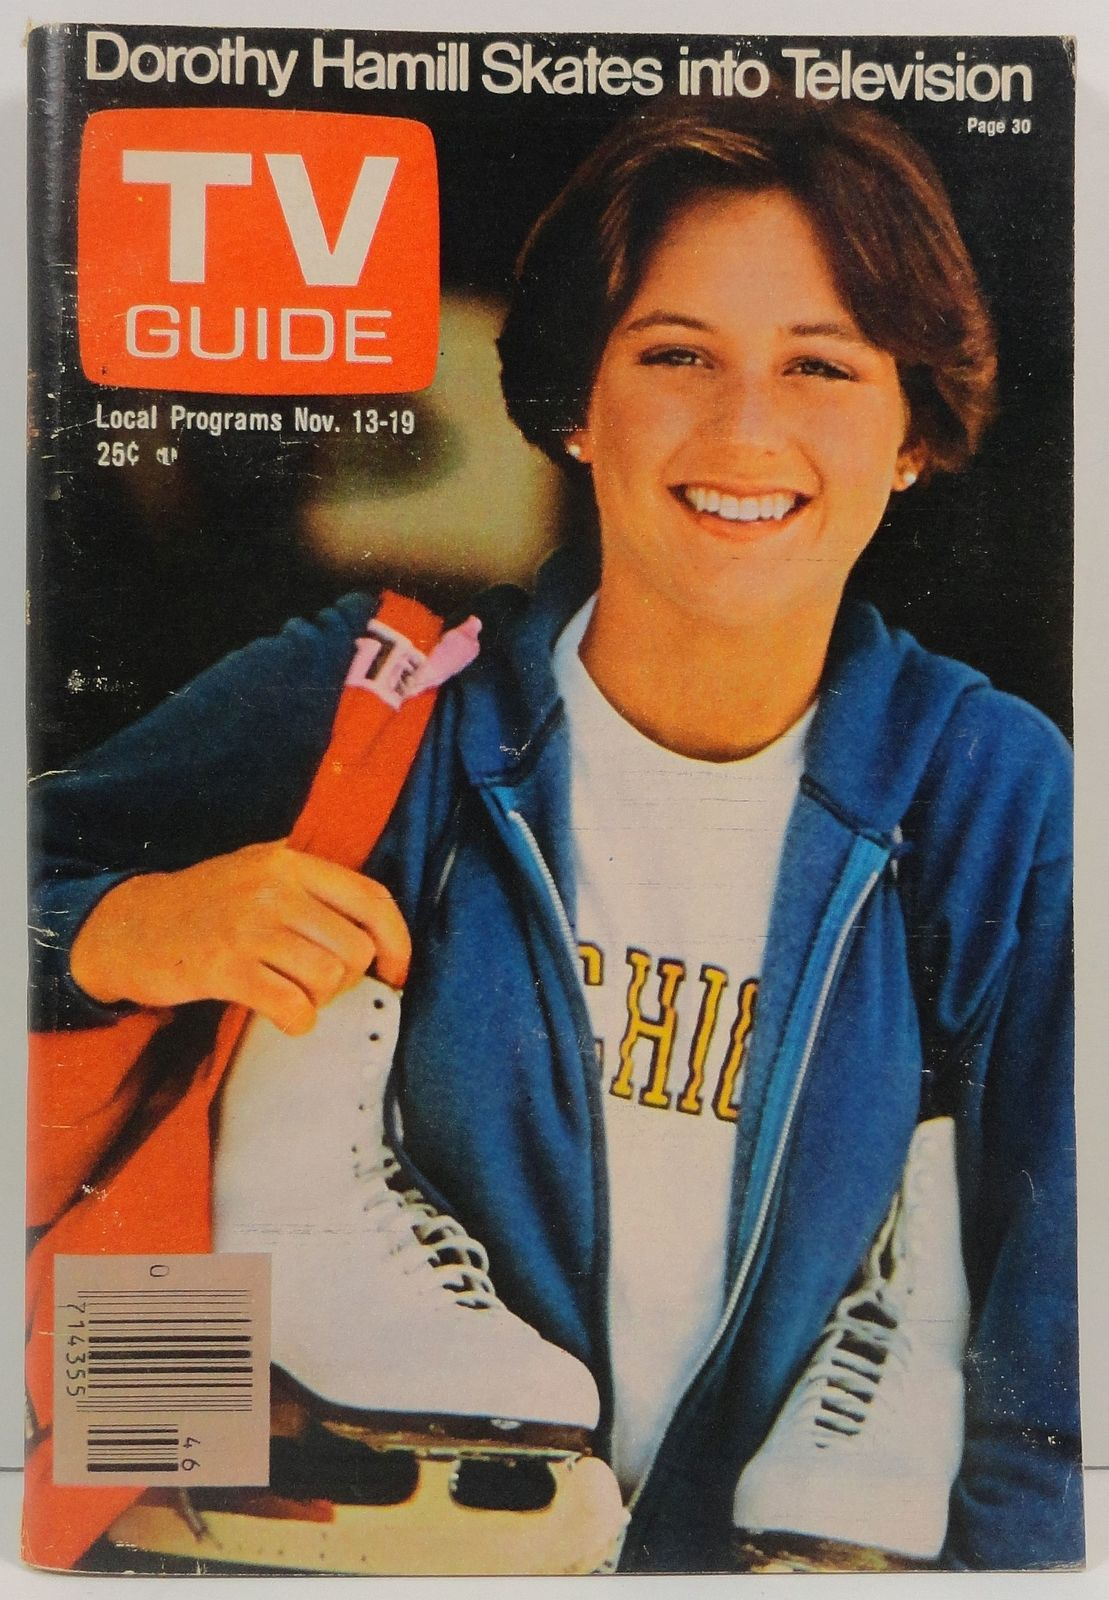 Primary image for TV Guide Magazine November 13, 1976 Dorothy Hamill Cover